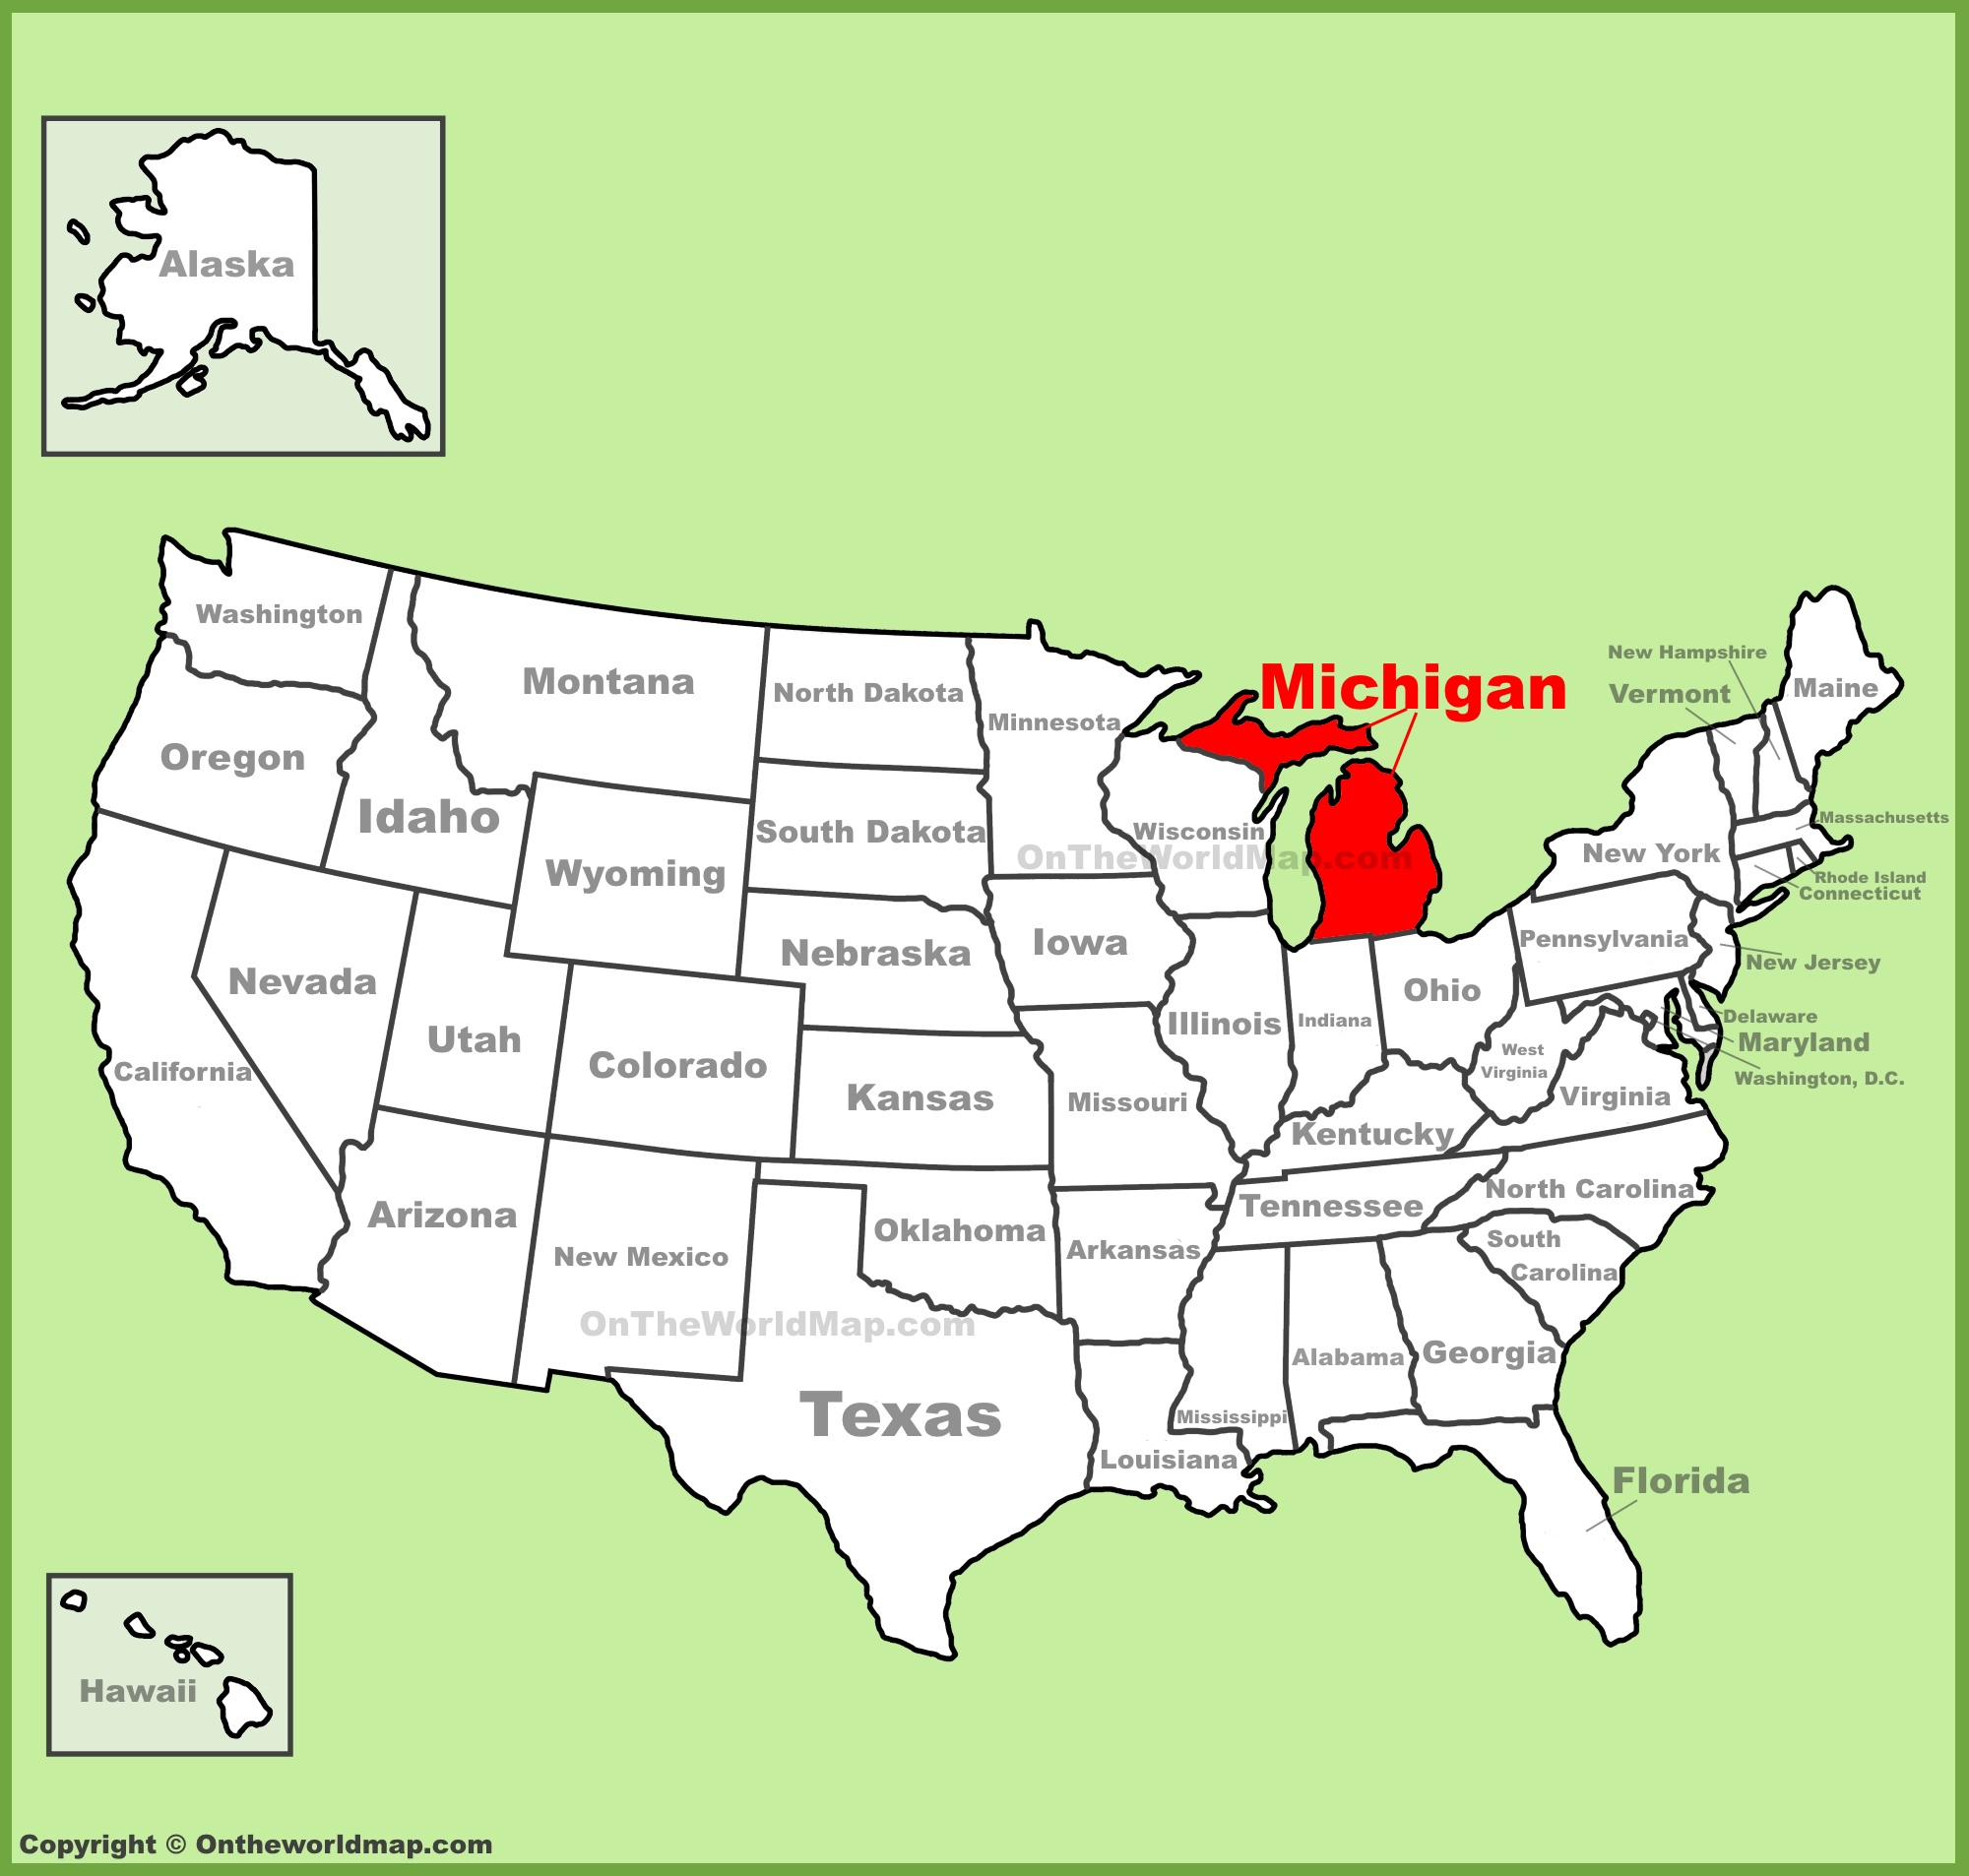 Michigan State Map Michigan State Maps | USA | Maps of Michigan (MI) Michigan State Map